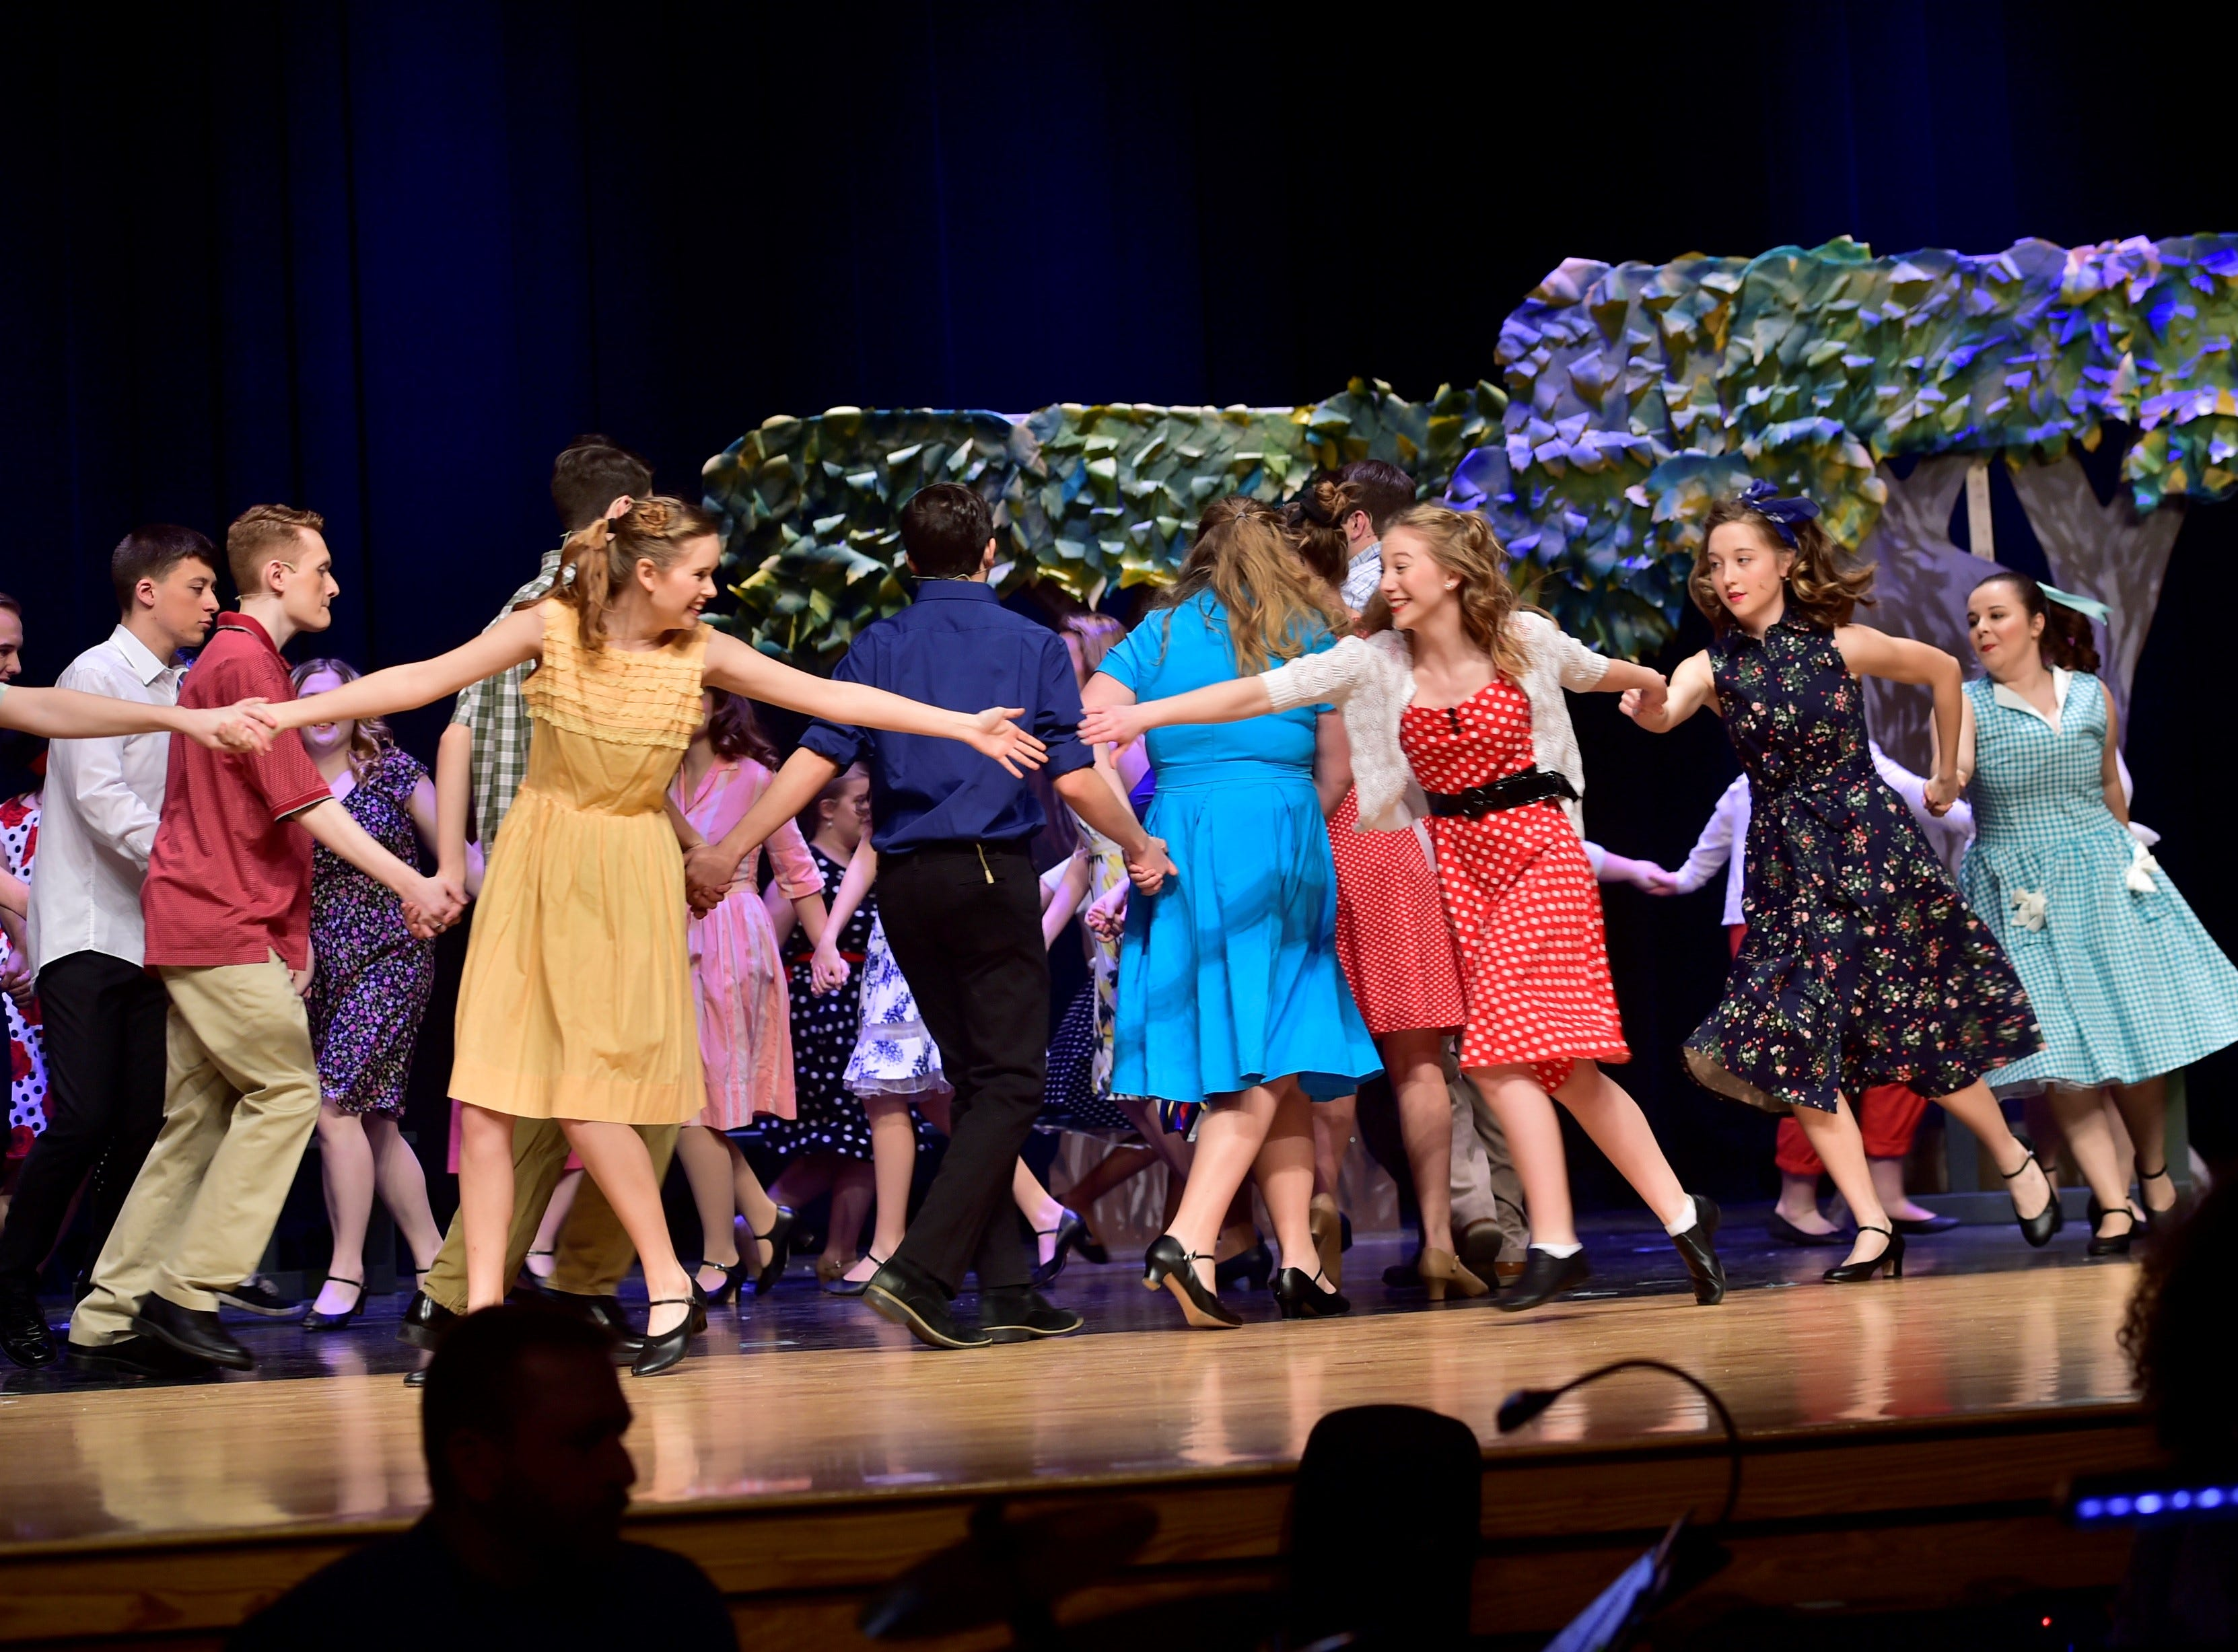 """Cast members rehearse a dance number in a scene  from """"The Pajama Game,"""" on Sunday, March 10, 2019, at Waynesboro Area Senior High School. The musical, based on the 1953 novel, """"7 1/2 Cents"""" by Richard Bissell, tells the story of a pajama factory where workers are fighting for a raise of 7 1/2 cents. Showtimes for Waynesboro Area School District's All-School Production of """"The Pajama Game"""" are 7 p.m. Friday and Saturday, March 15 and 16, and 2 p.m. Sunday, March 17 in the high school auditorium. For choose-your-seat tickets, $10 for adults and $6 for children under 12, go to https://washsmusic.ticketleap.com/the-pajama-game/. General admission tickets will also be sold at the door."""